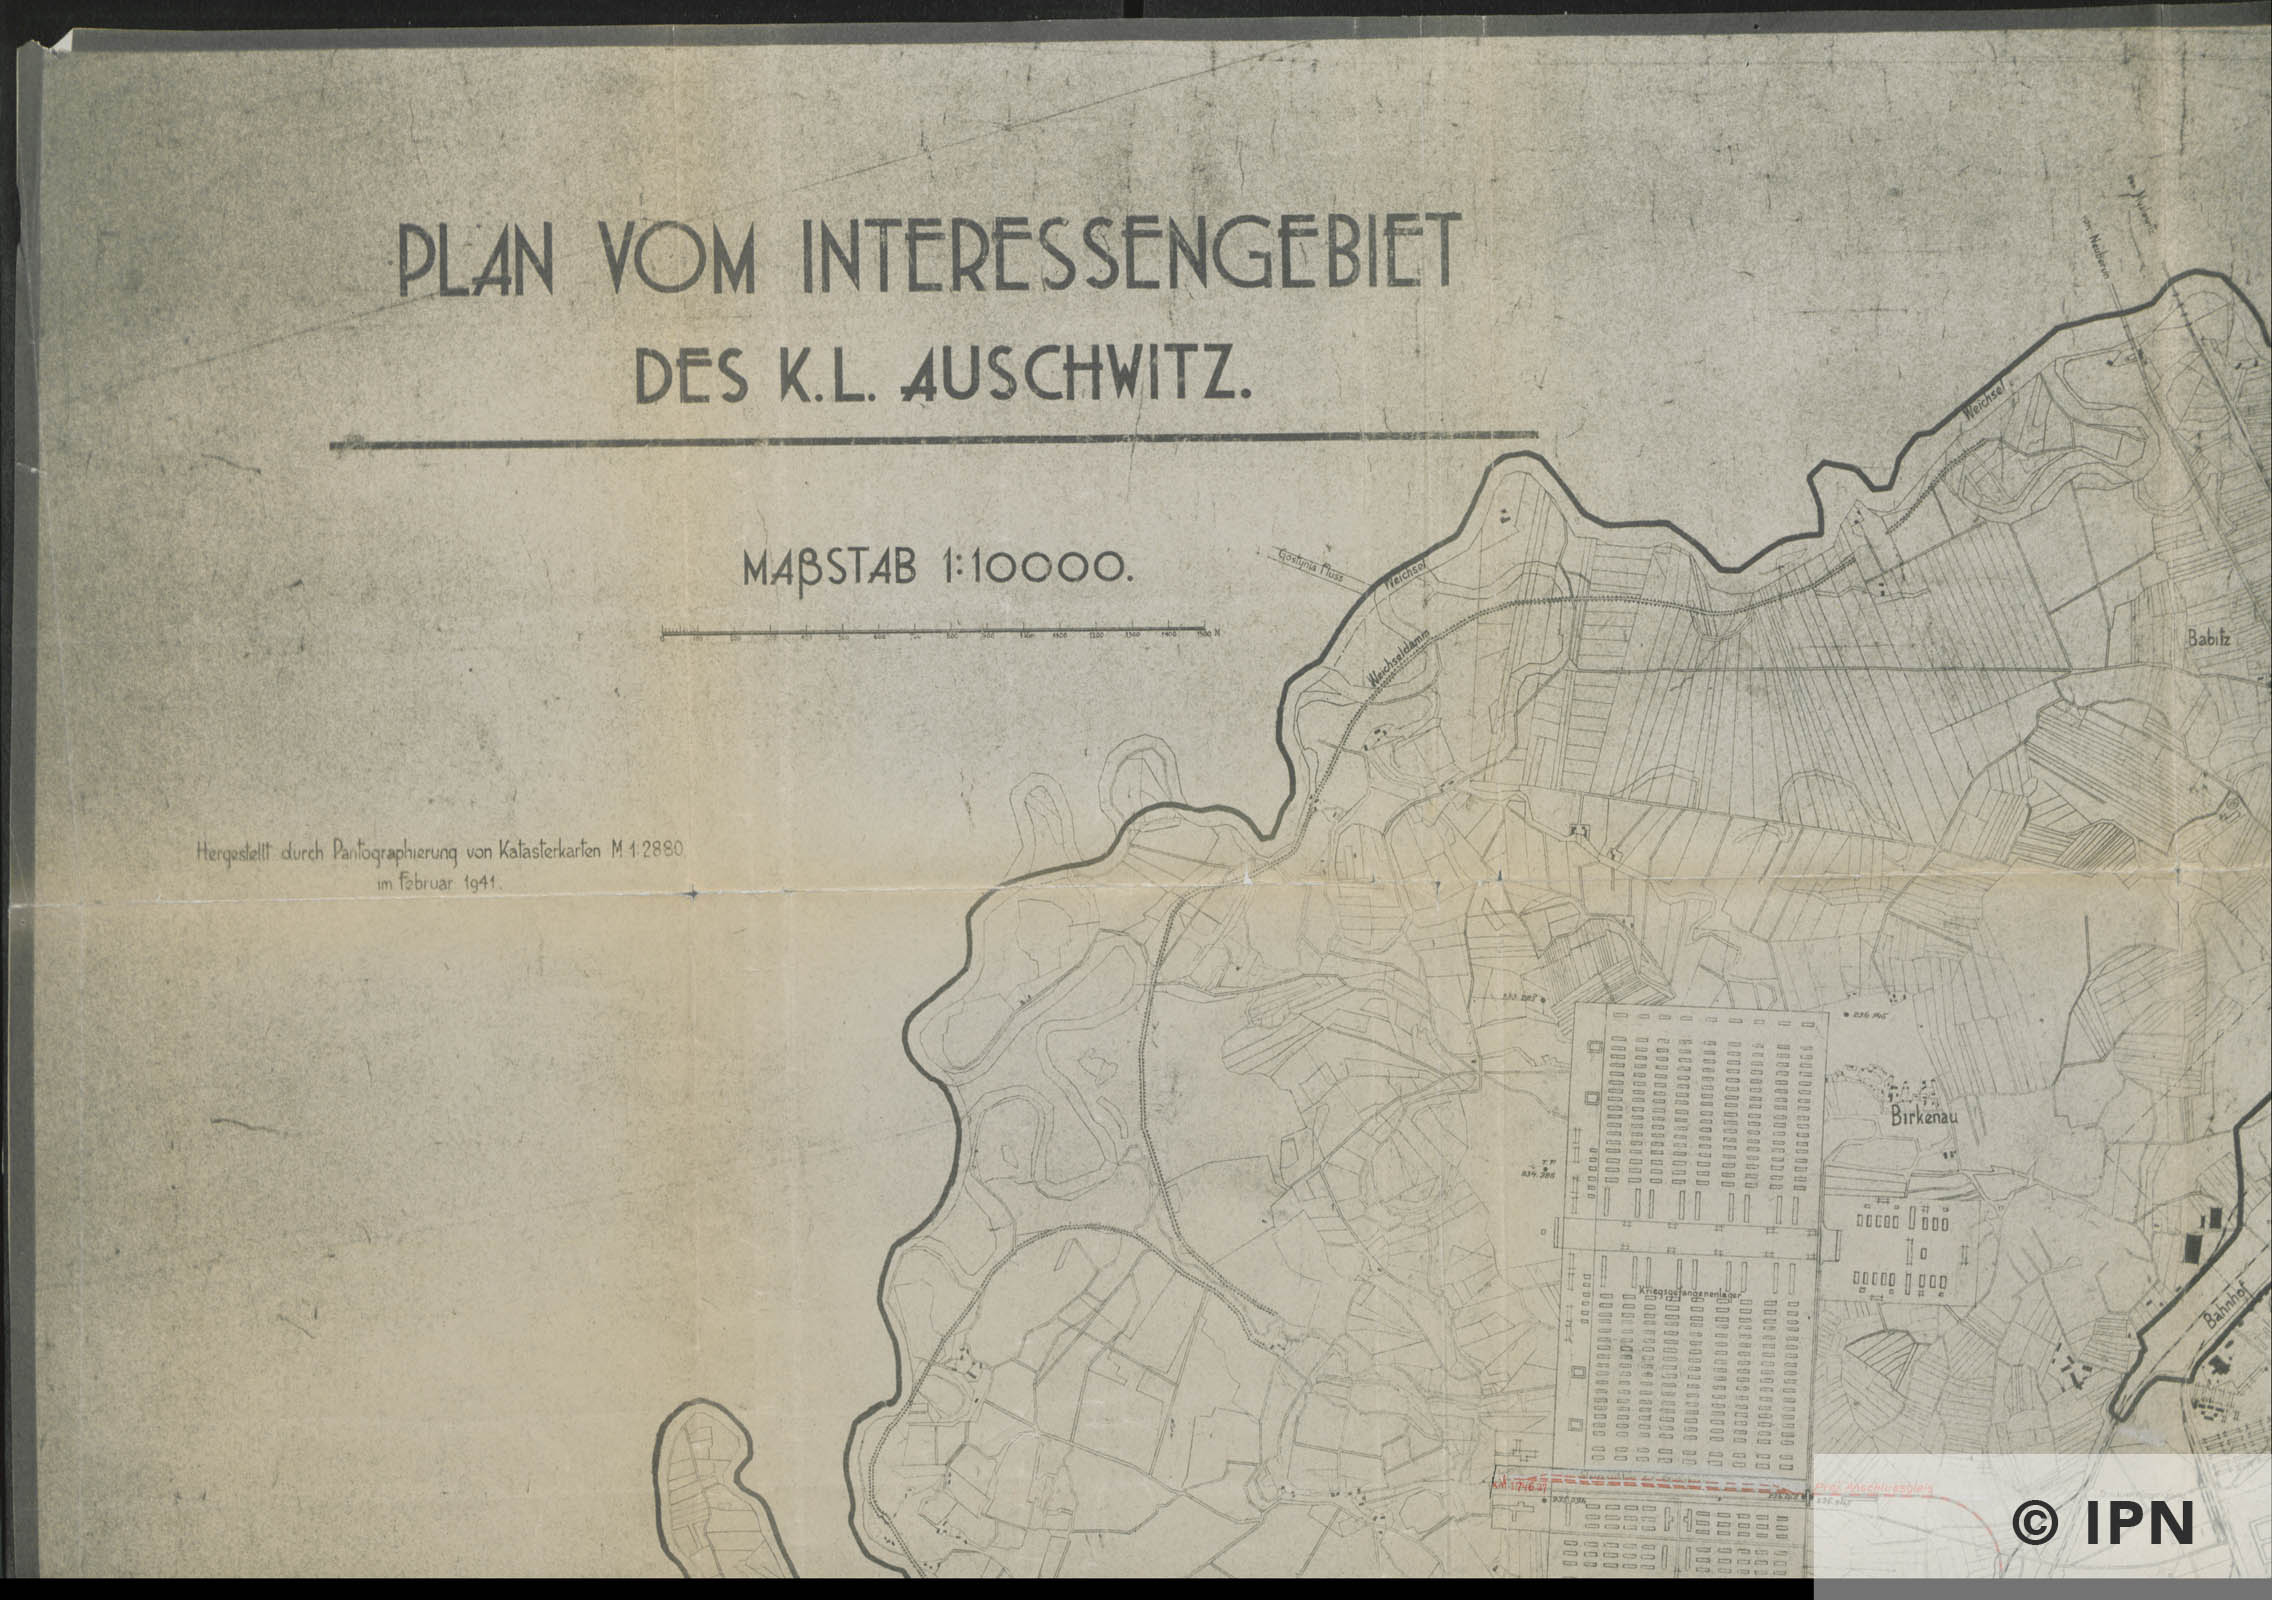 Plan vom Interessengebiet des KL Auschwitz. 15 January 1943. IPN GK 196 101 0029